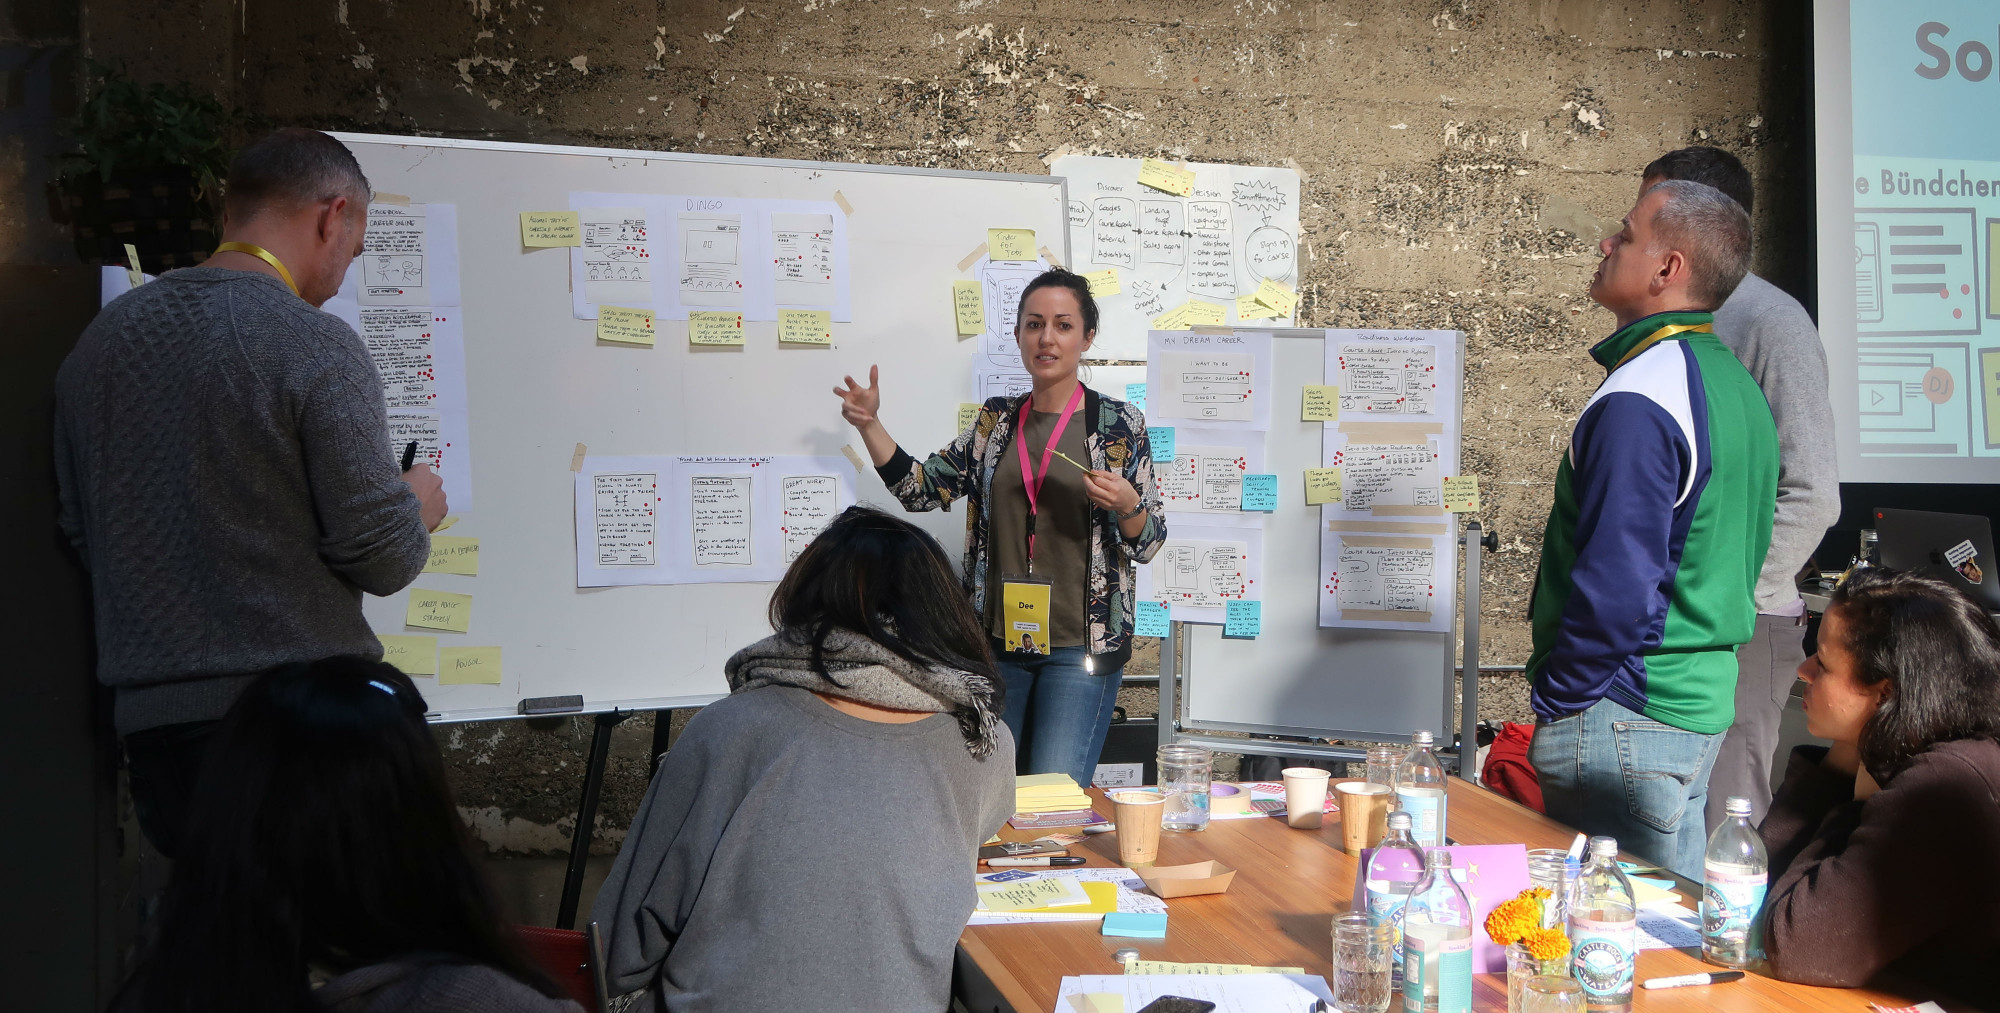 Design facilitation for UX designers